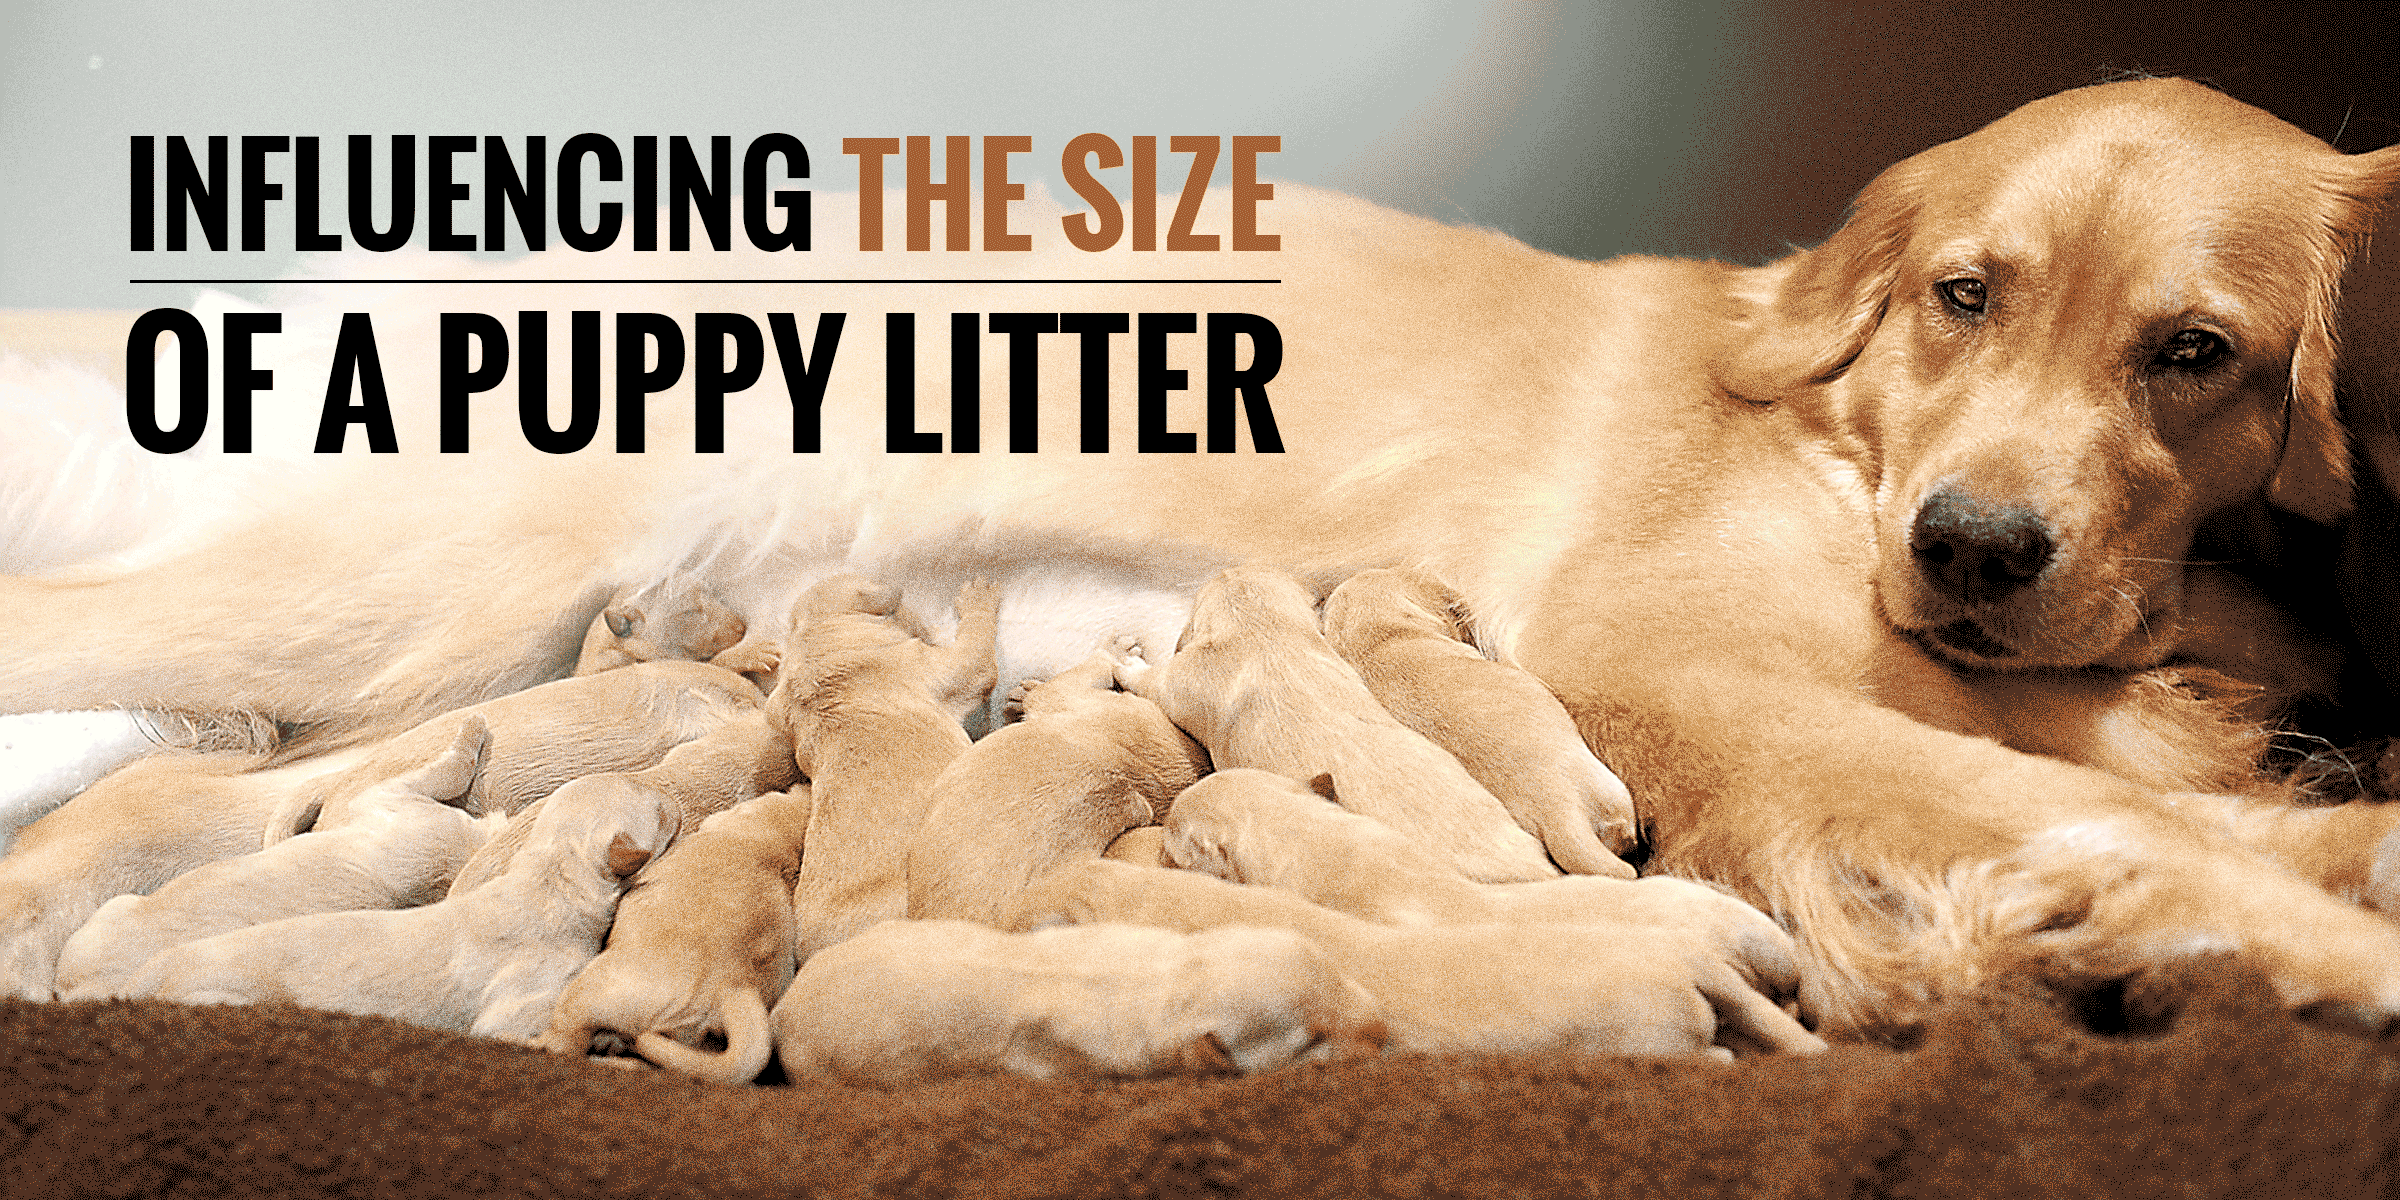 What Influences The Size Of A Puppy Litter